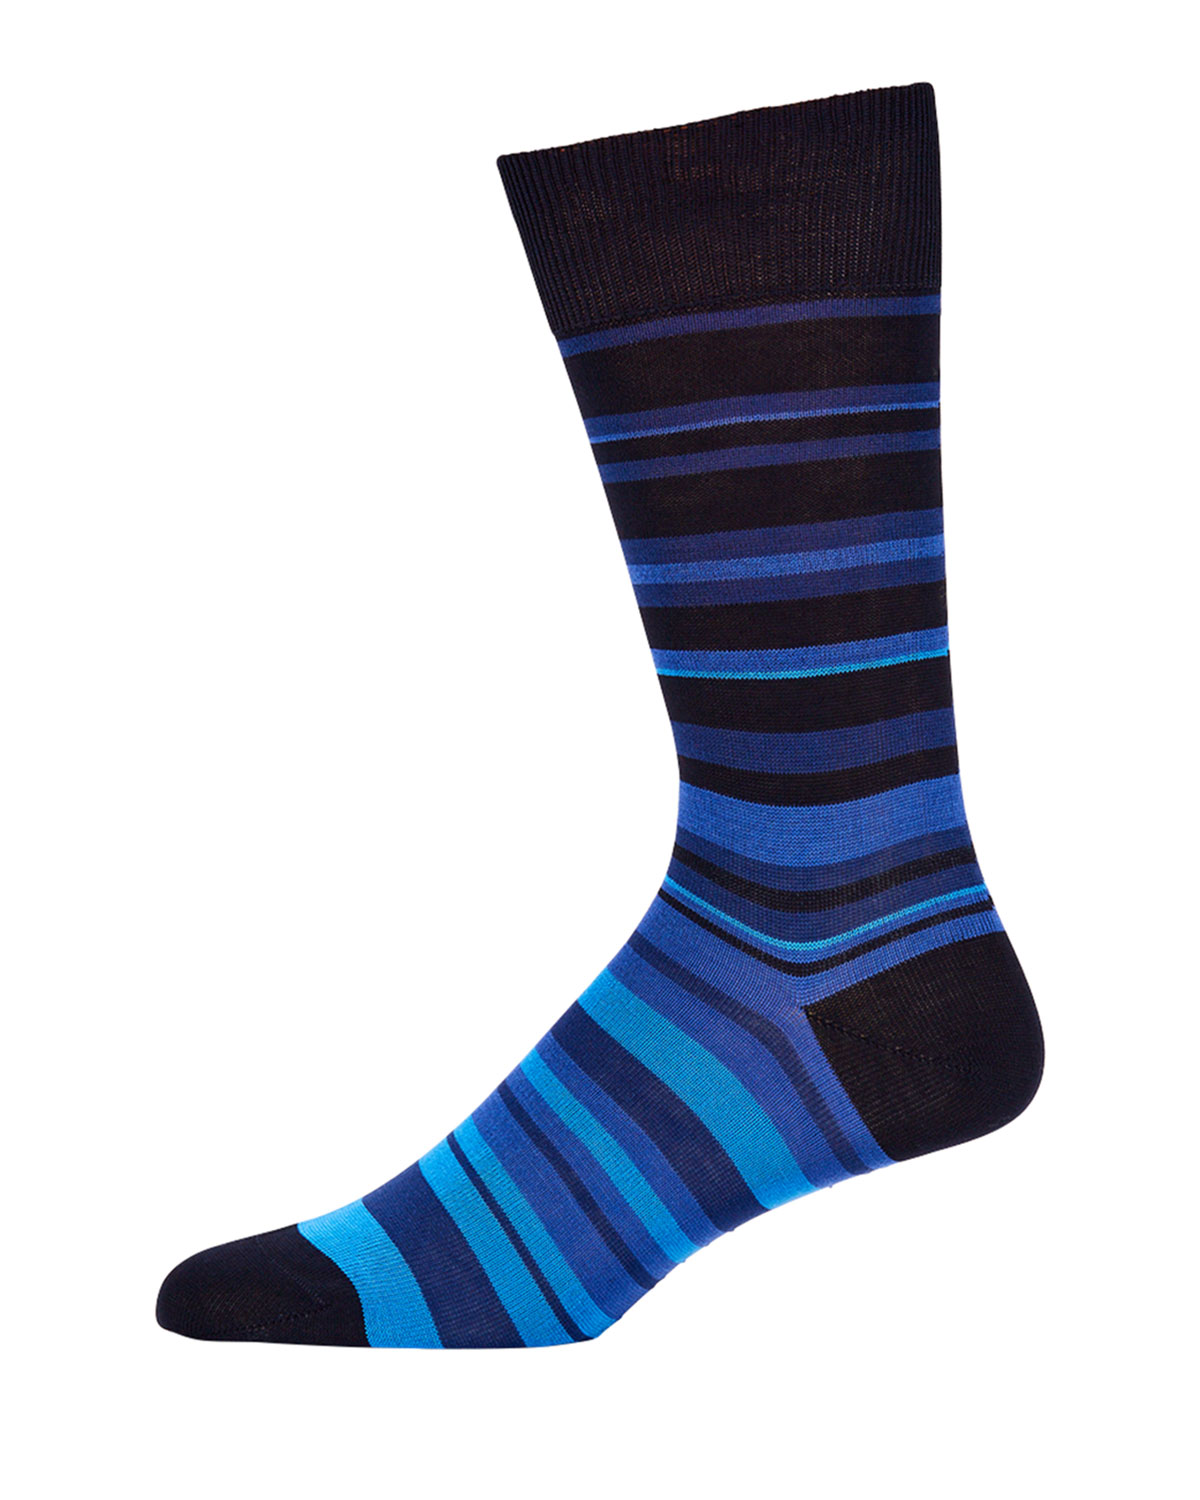 Paul Smith MEN'S ELLIOT STRIPES SOCKS